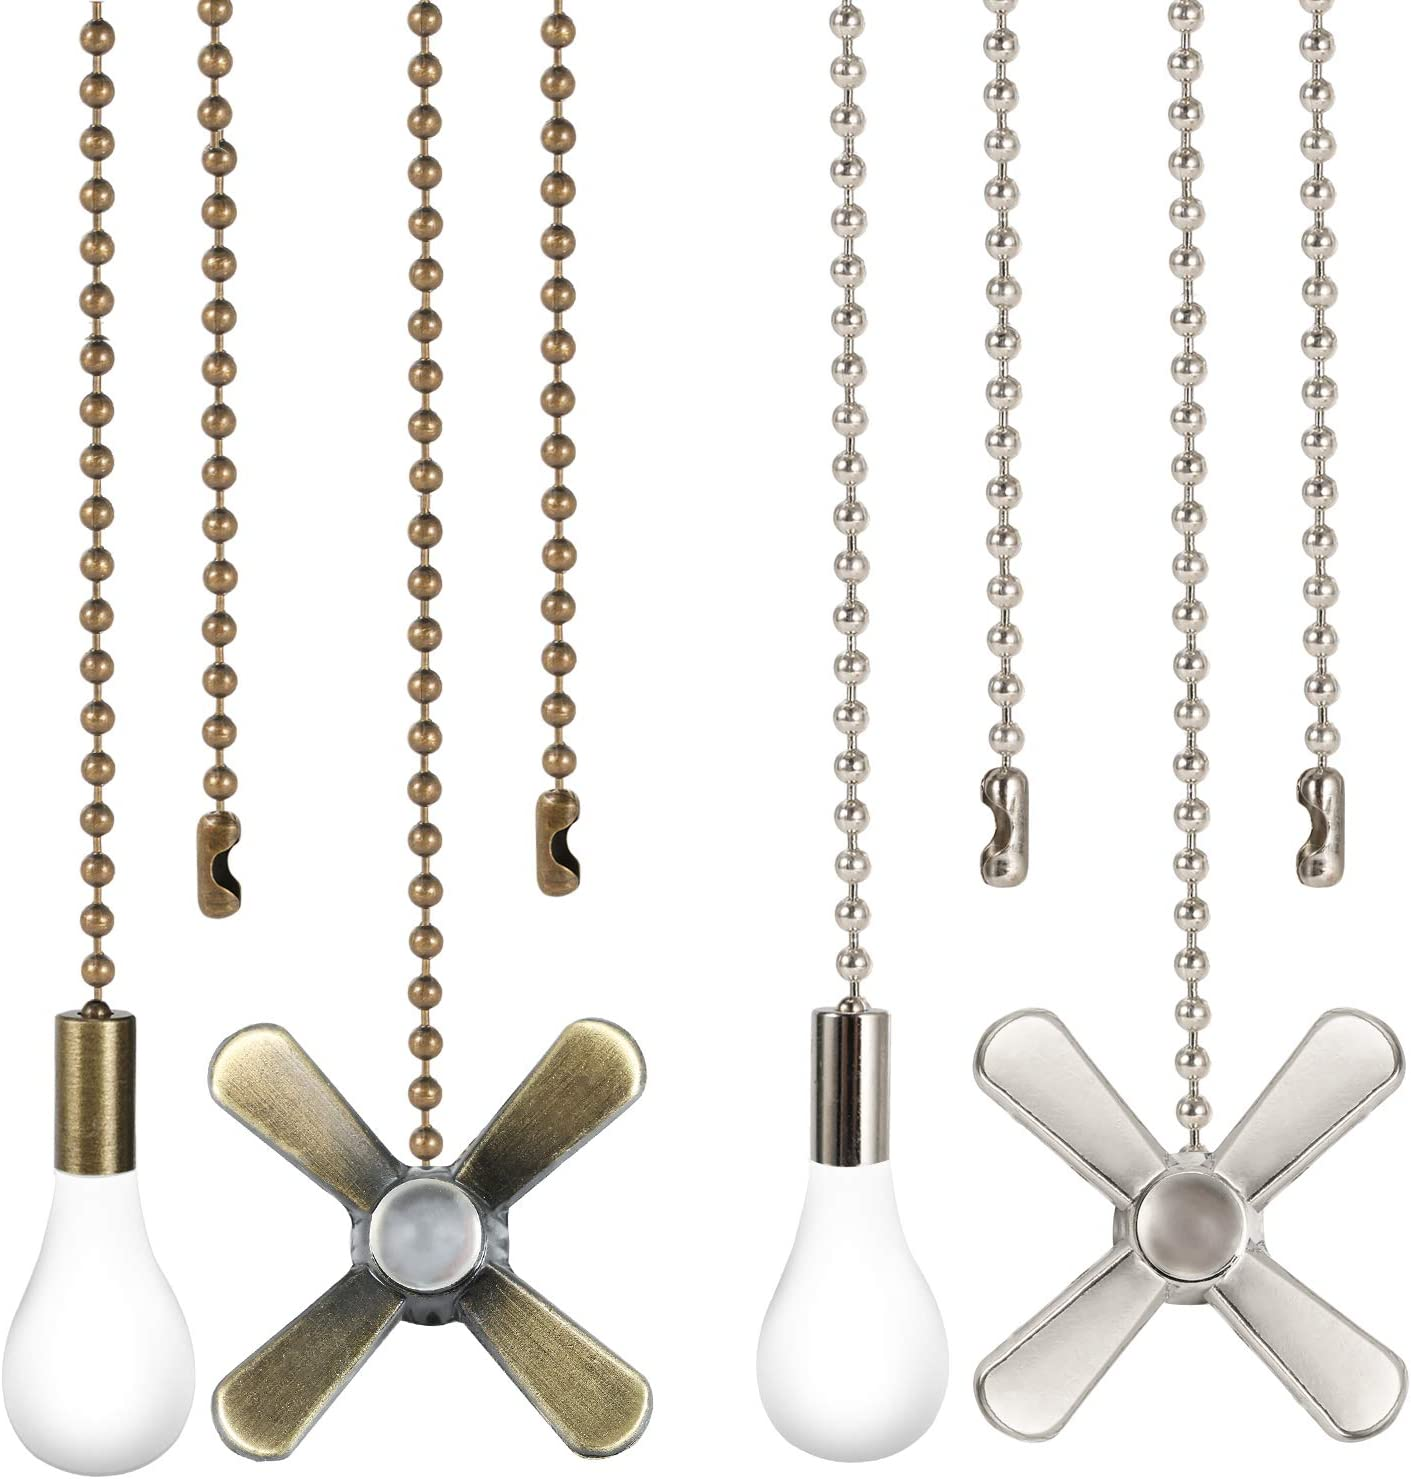 Ceiling Fan Pull Chain 4PCS 2 Sets Pull Chain Extension with Connector Copper Beaded Ball Pull Chain for Ceiling Light Fan 2 Colors Bronze and White Nickel Classic Ceiling Fan Pull Cord Pendant - -